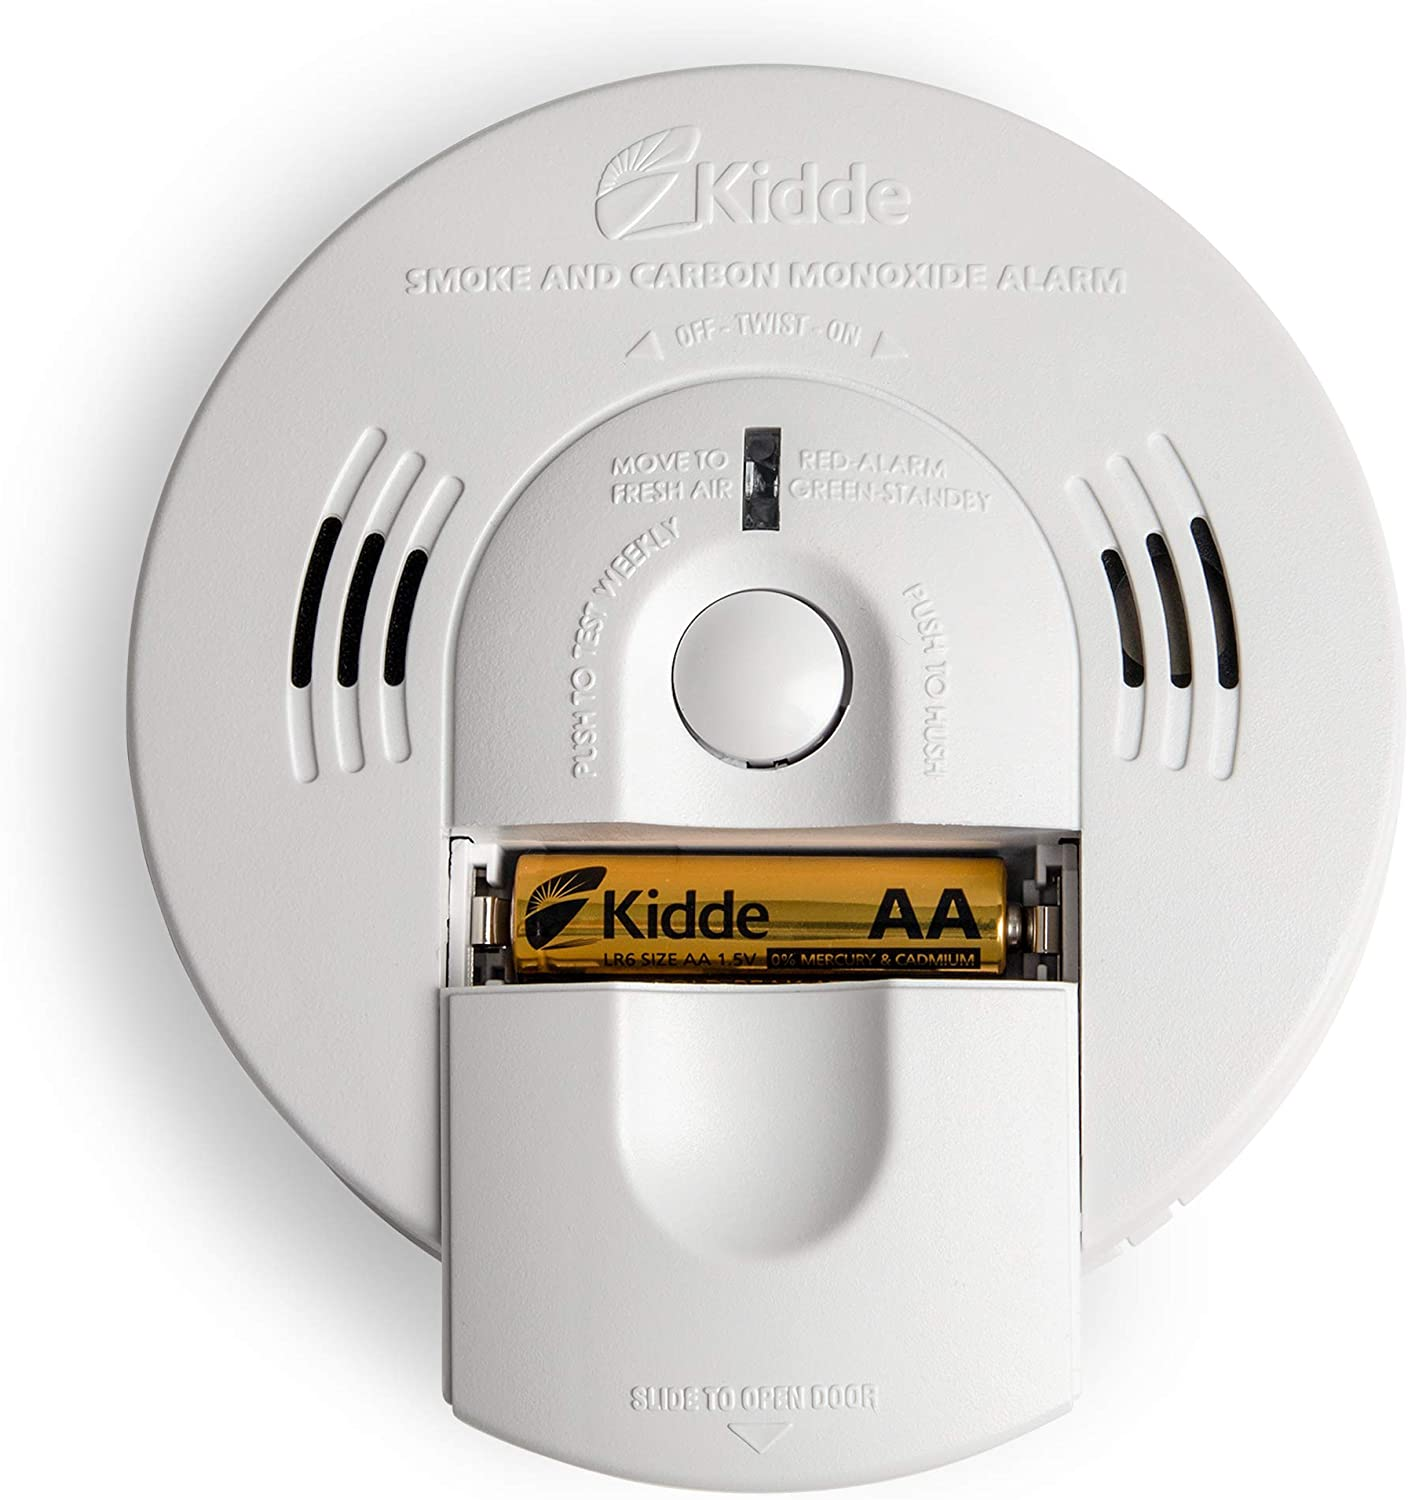 Kidde Smoke And Carbon Monoxide Detector Alarm With Voice Warning